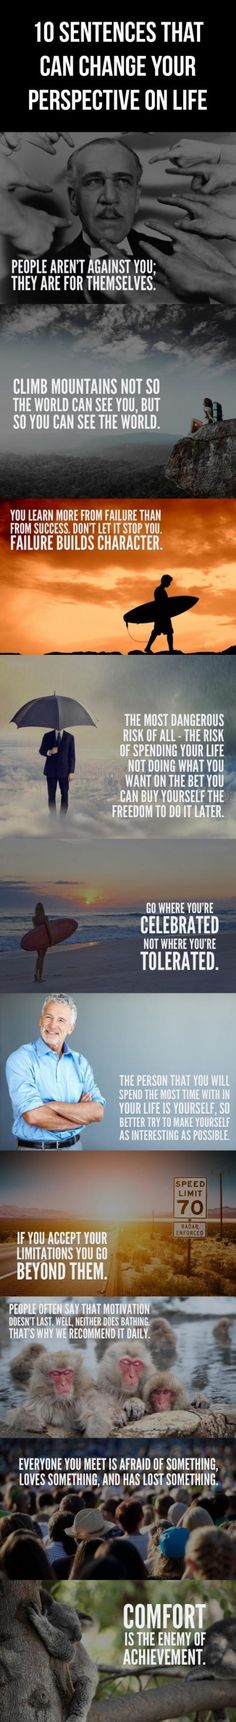 10 sentences that can change your perspective on life.  I typically hate these kinds of things, but this one is good.